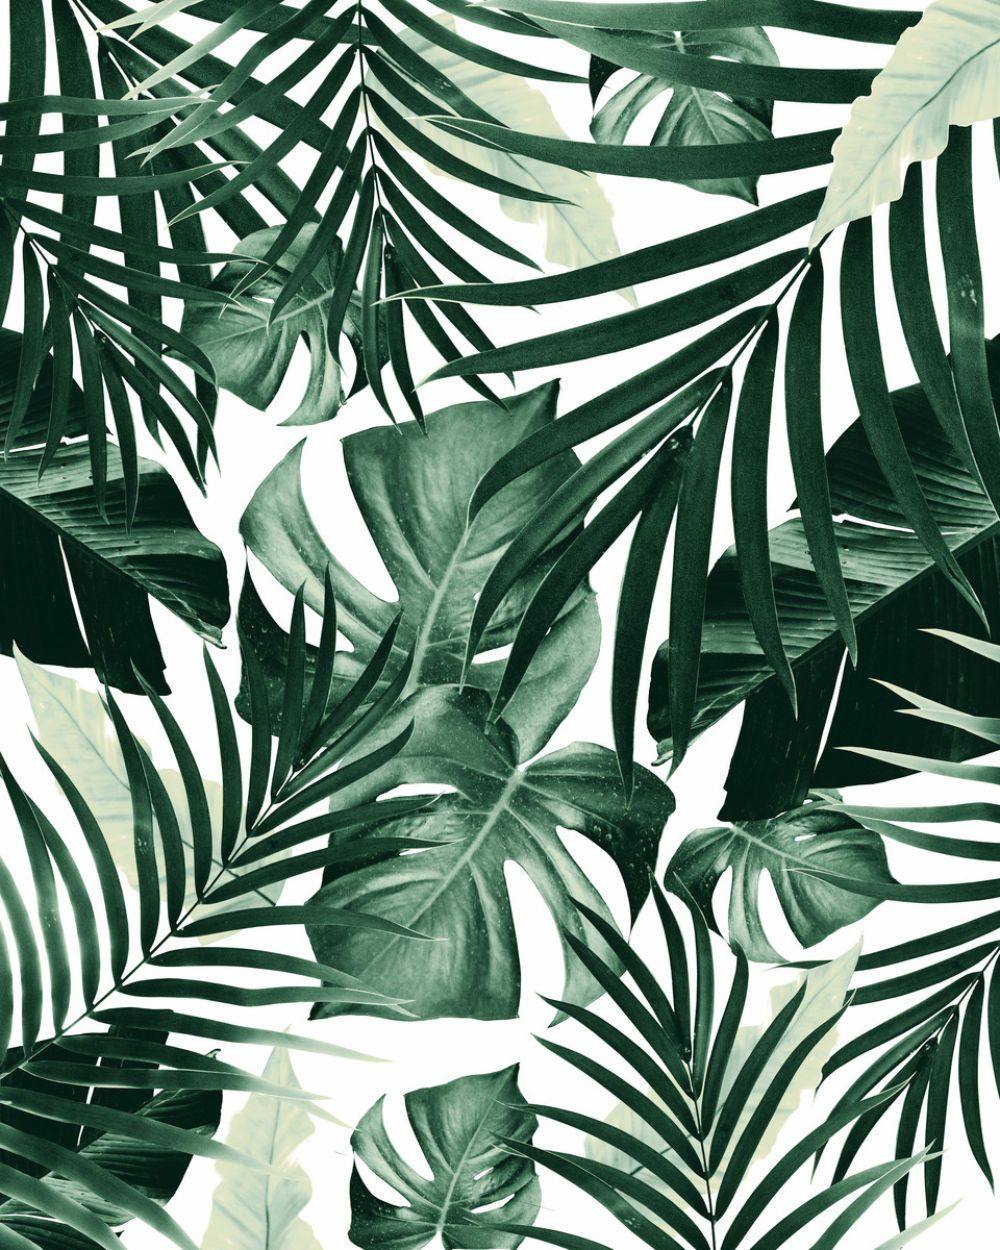 Tropical Jungle Leaves Pattern 4 Tropical Decor Art Phone Case By Anita S Bella S Art Anitabellaart From 17 00 Mipic Leaves Wallpaper Iphone Leaf Wallpaper Plant Wallpaper Get 15% off all subscriptions and credits with coupon code picjumbo15. pinterest